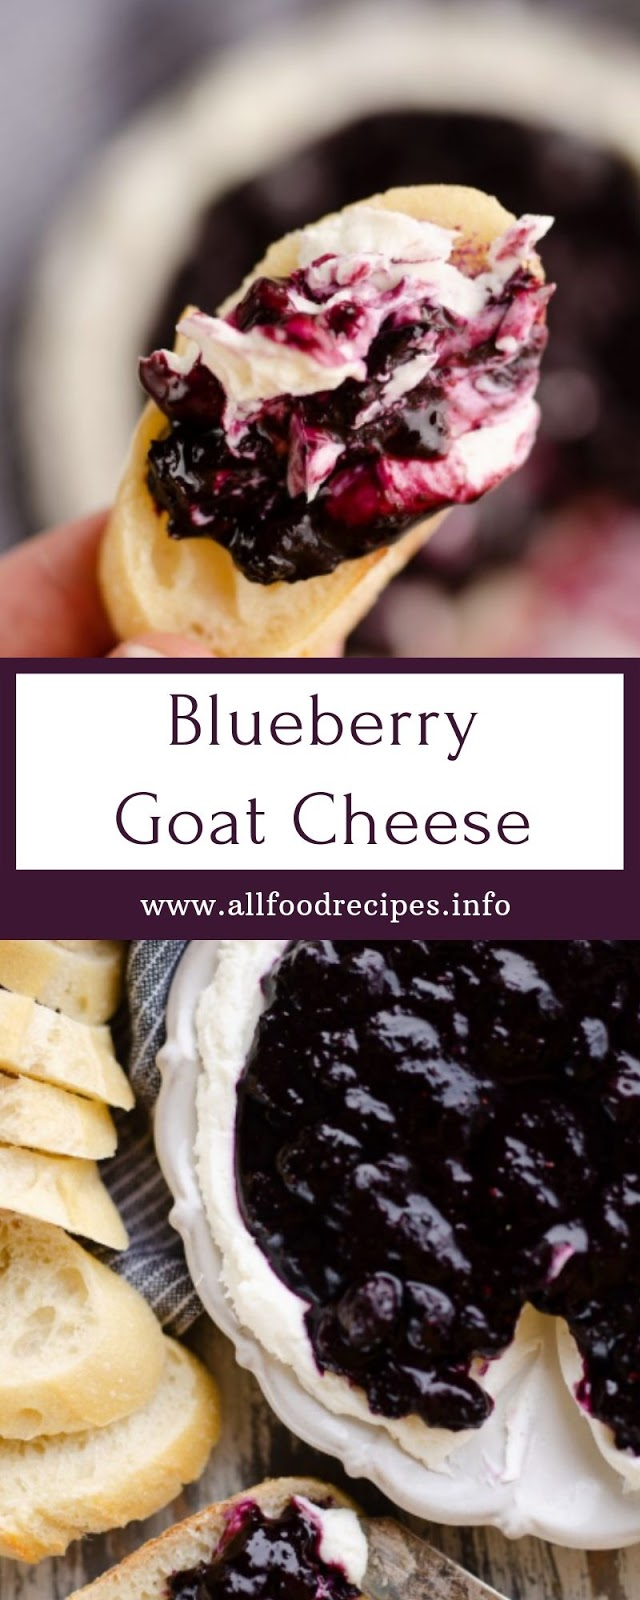 Blueberry Goat Cheese